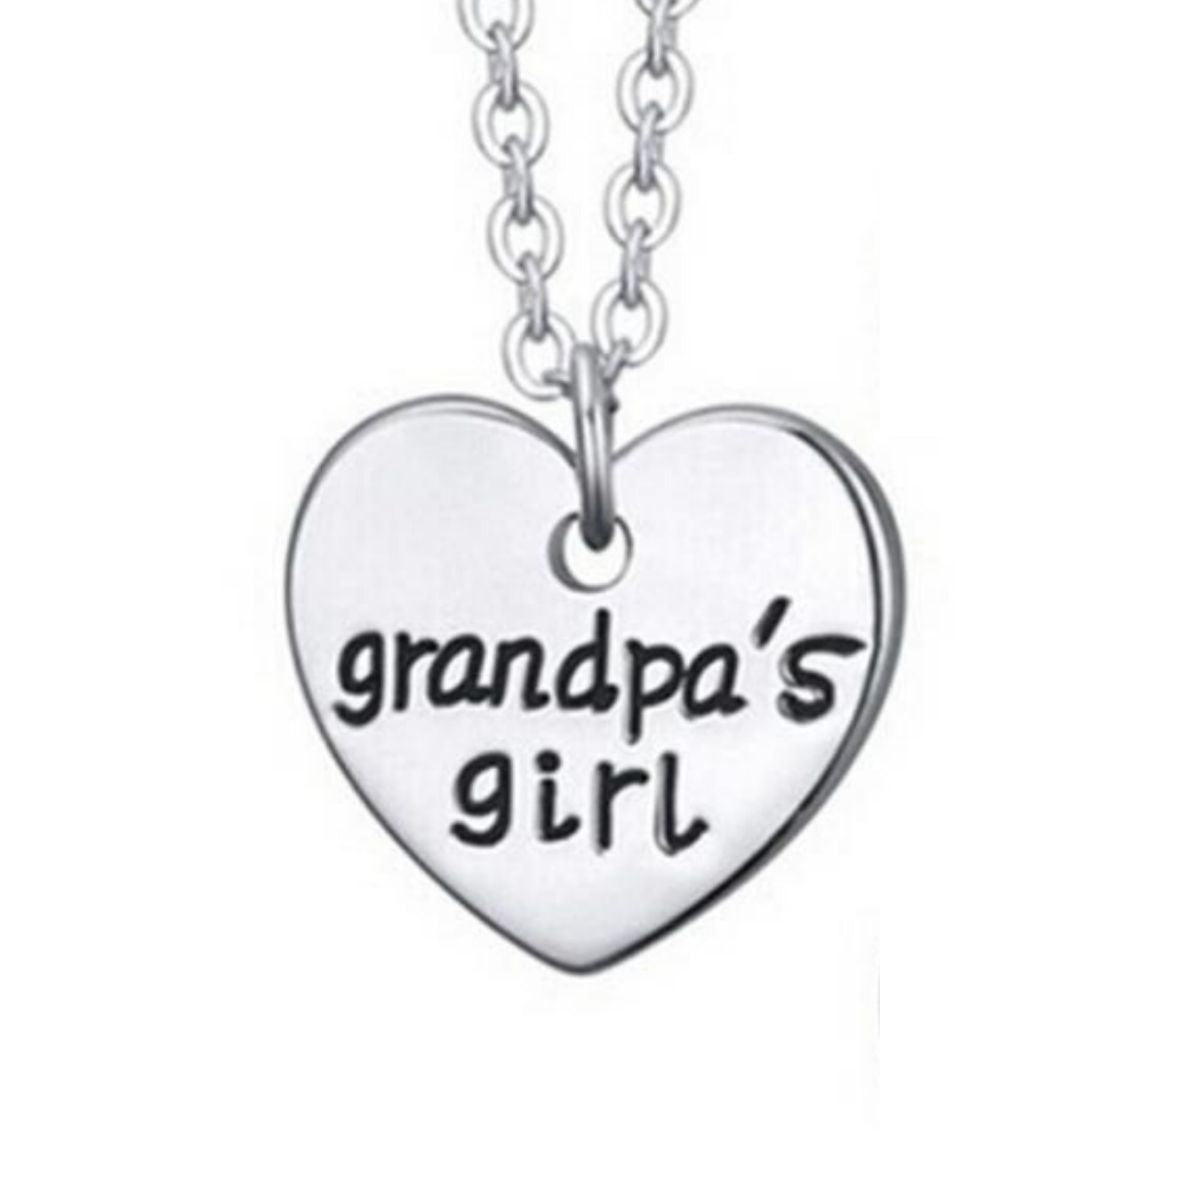 Grandpa's Girl Necklace (FREE SHIPPING!)